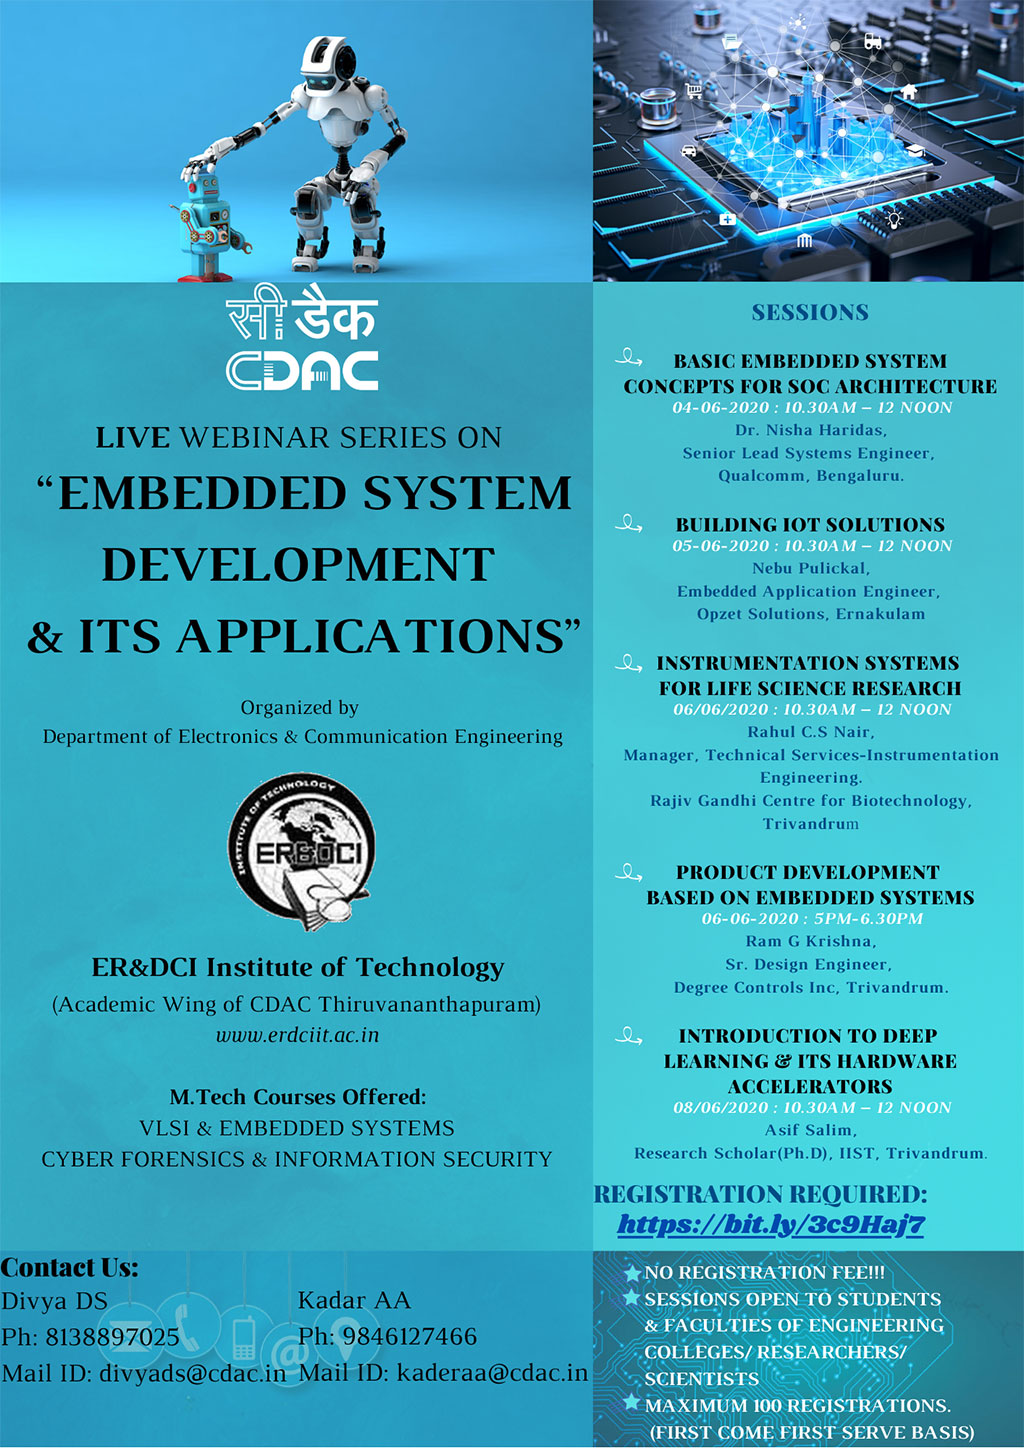 EMBEDDED SYSTEM DEVELOPMENT & ITS APPLICATIONS